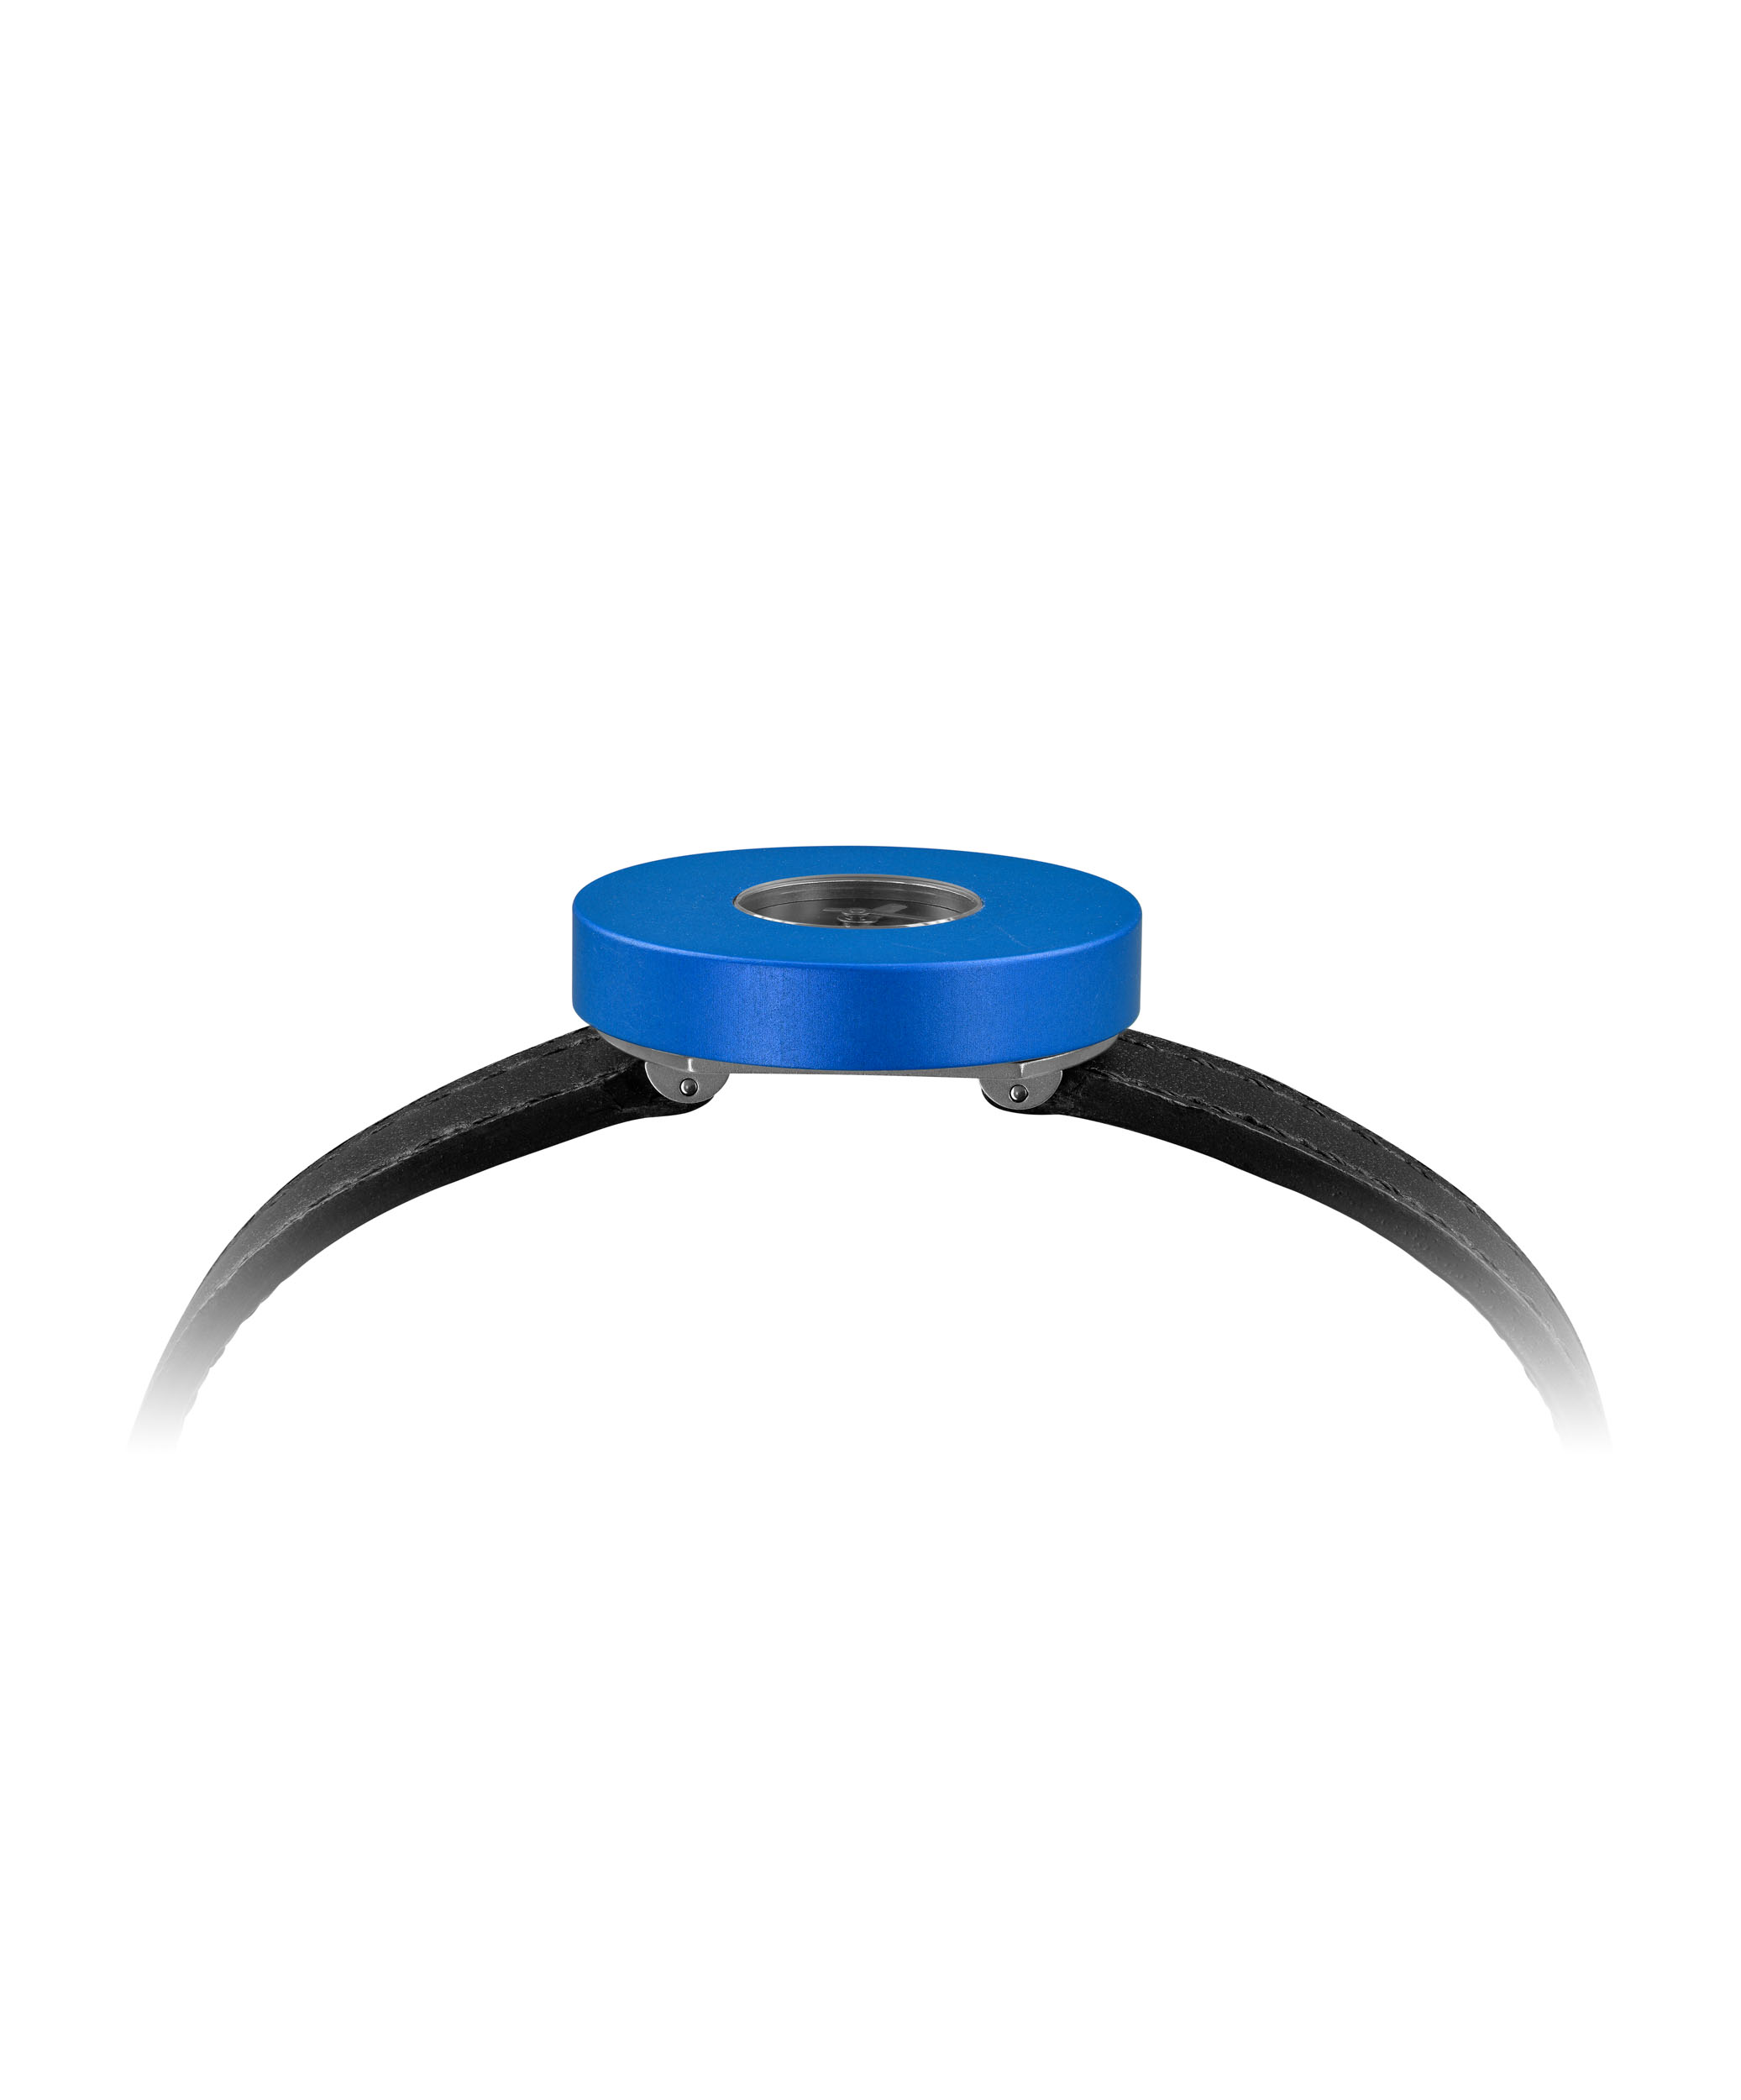 Junod-Vignelli MV Small black_dial blue_ring leather_band side-small.JPG